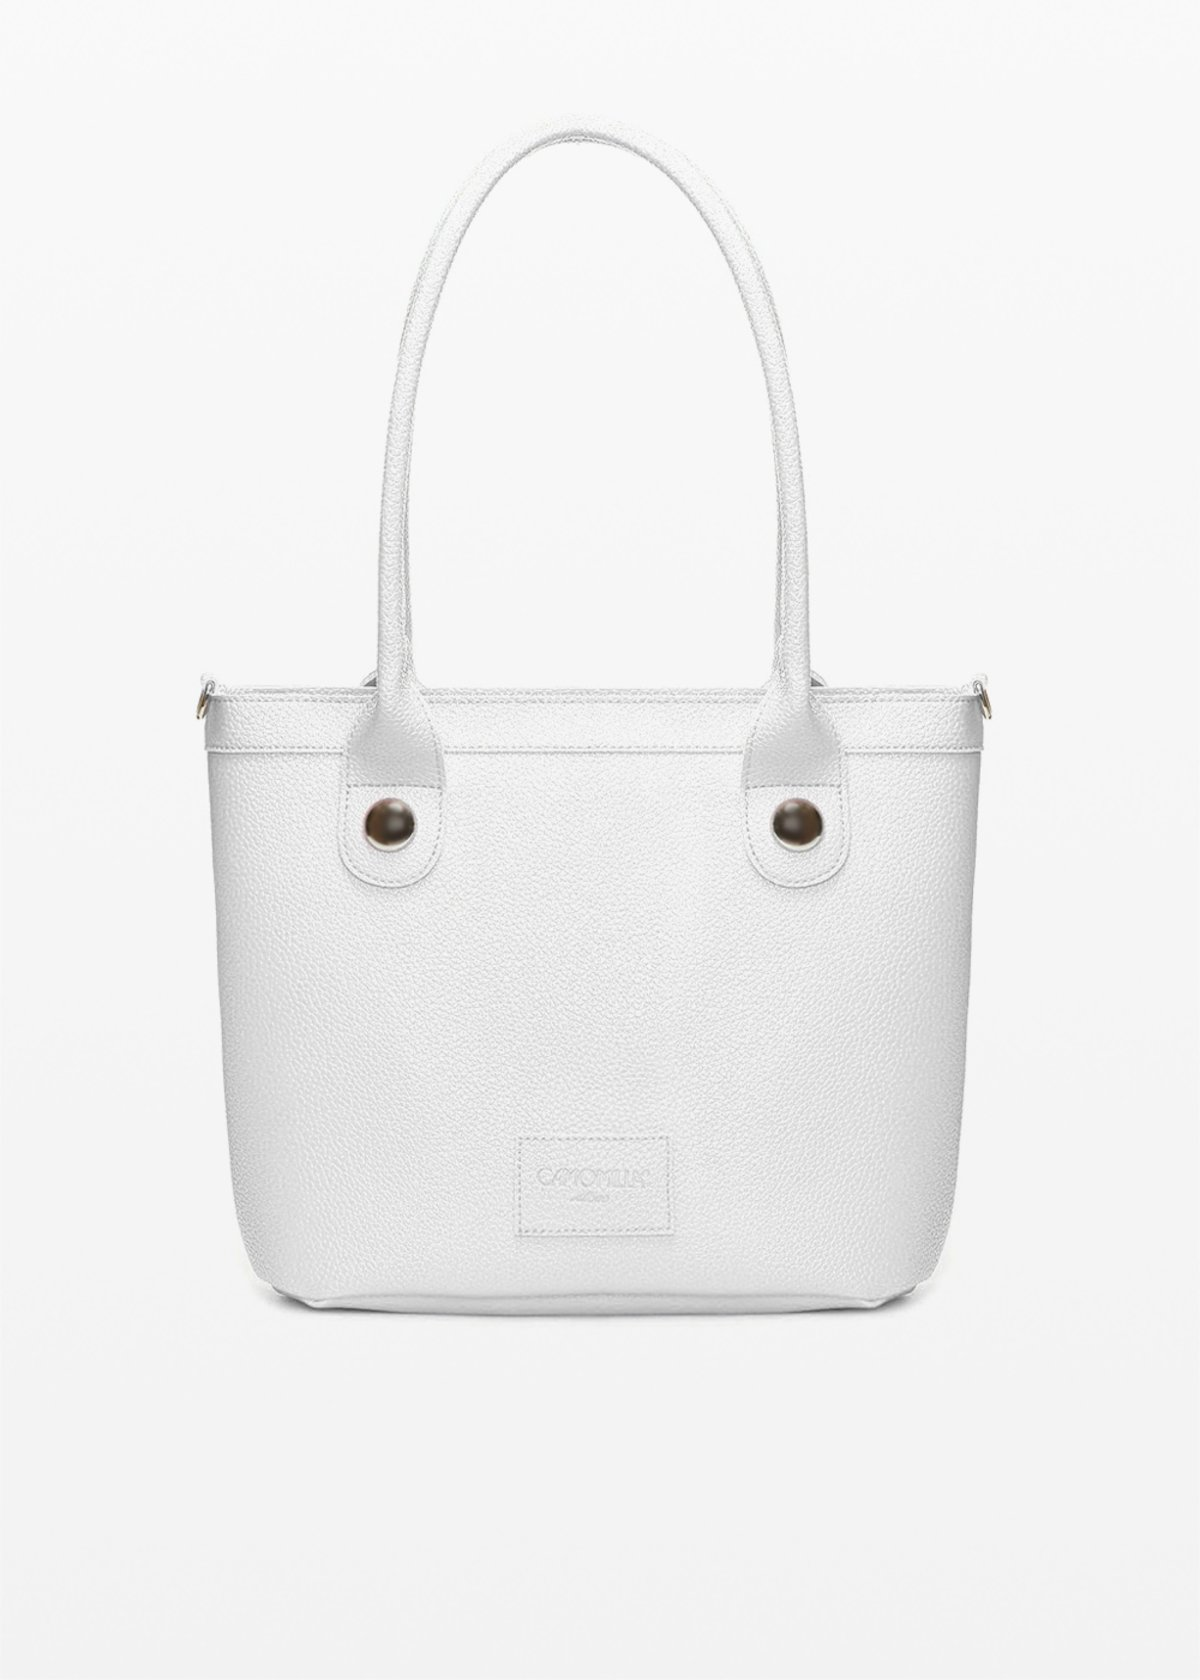 Baggy faux leather bag with metal details - White - Woman